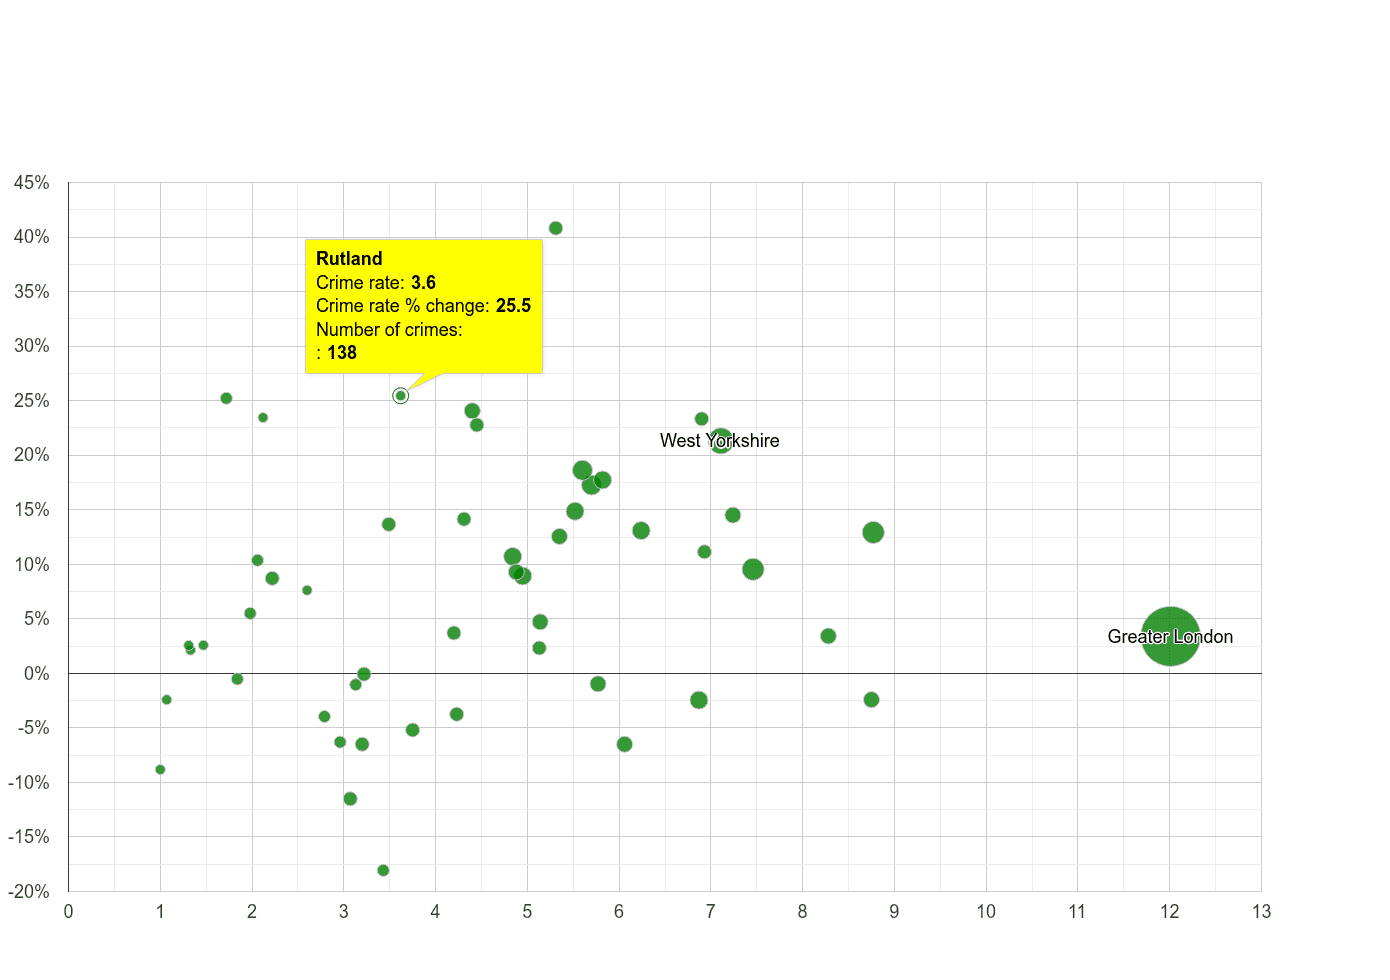 Rutland vehicle crime rate compared to other counties